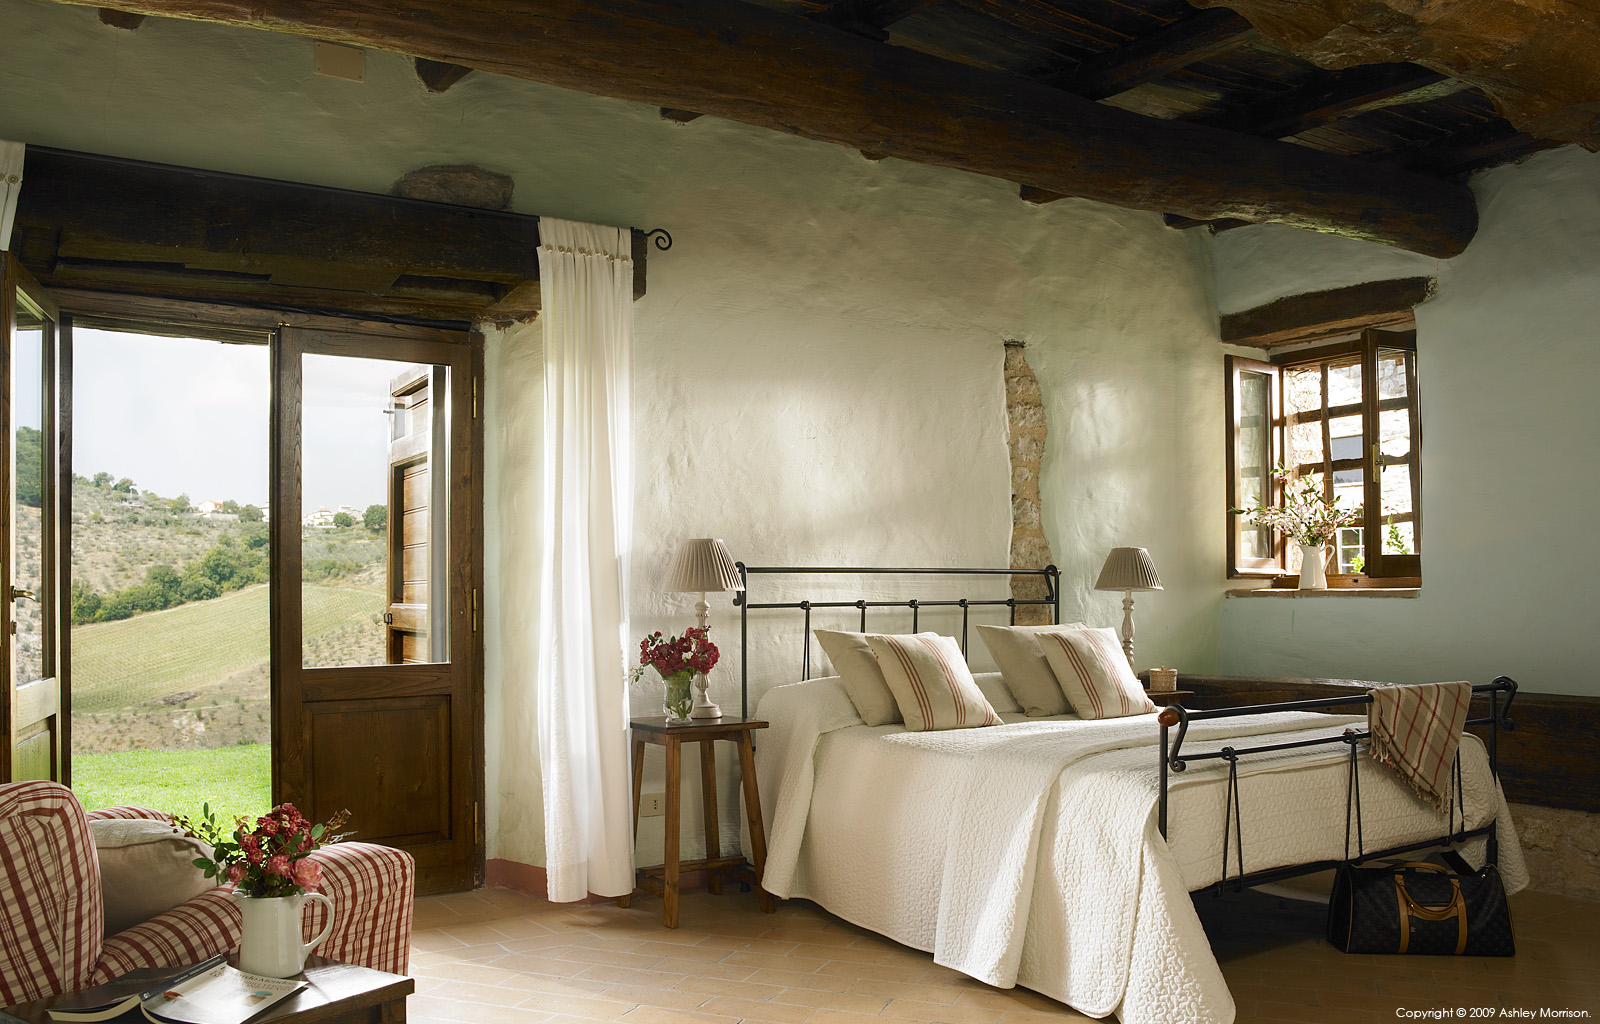 Bedroom in Casa del Cipresso at Borgo Pianciano in the Umbria Region of Italy near Spoleto.